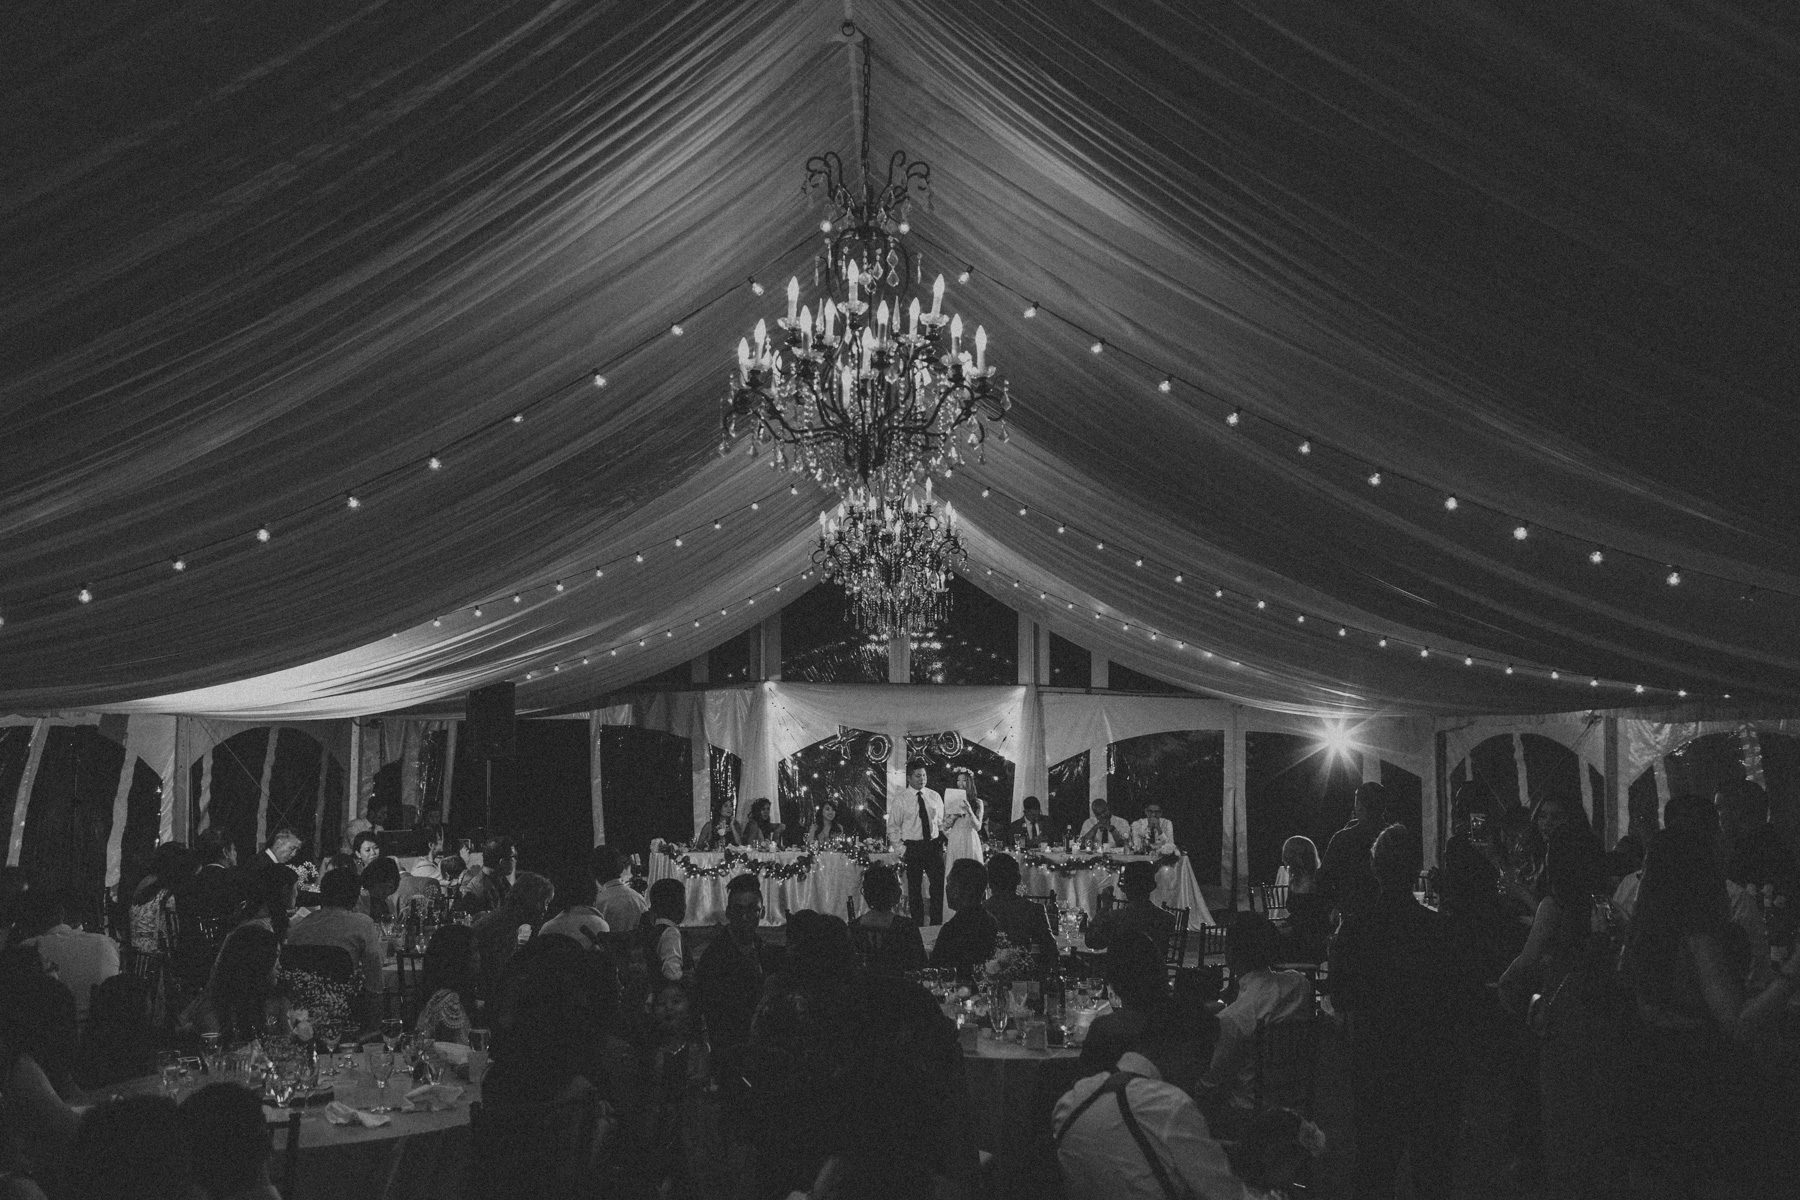 Belcroft-Estates-&-Event-Centre-wedding-photography-by-Sam-Wong-of-Artanis-Collective_046.jpg